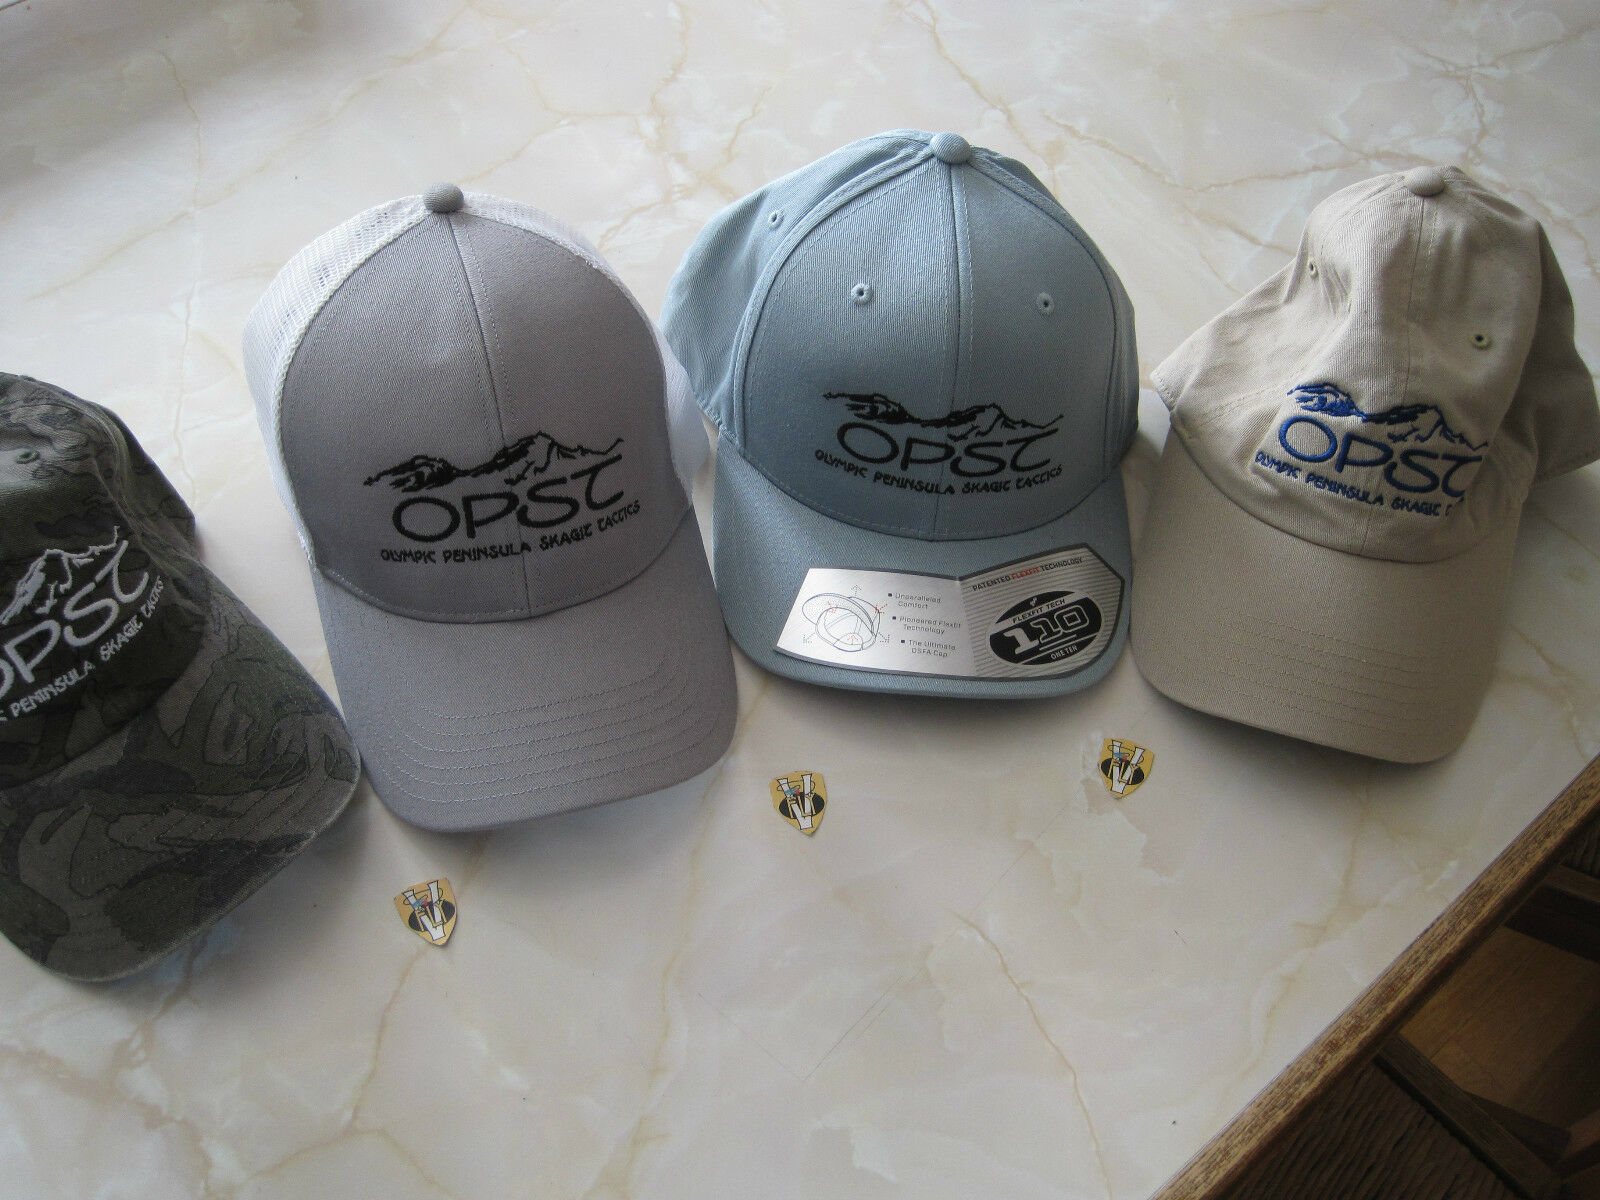 OPST Logo Fishing Caps 3  Style Options One size Fits all  get the latest